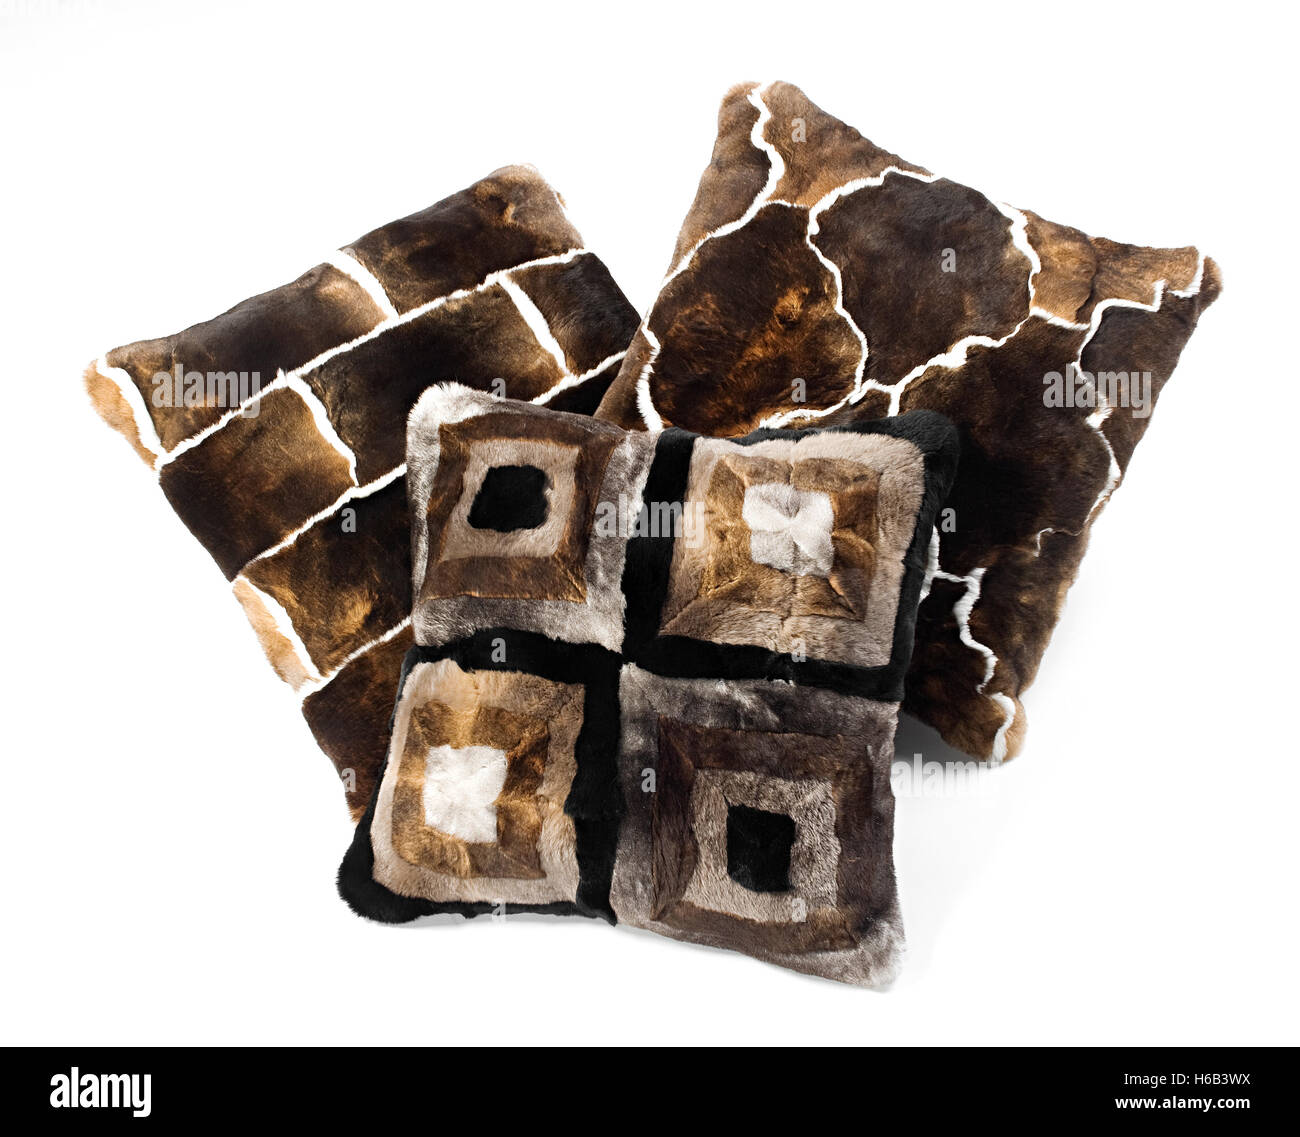 Three brown toned fur pillows with different bold geometric designs isolated on white in an interior decor concept - Stock Image